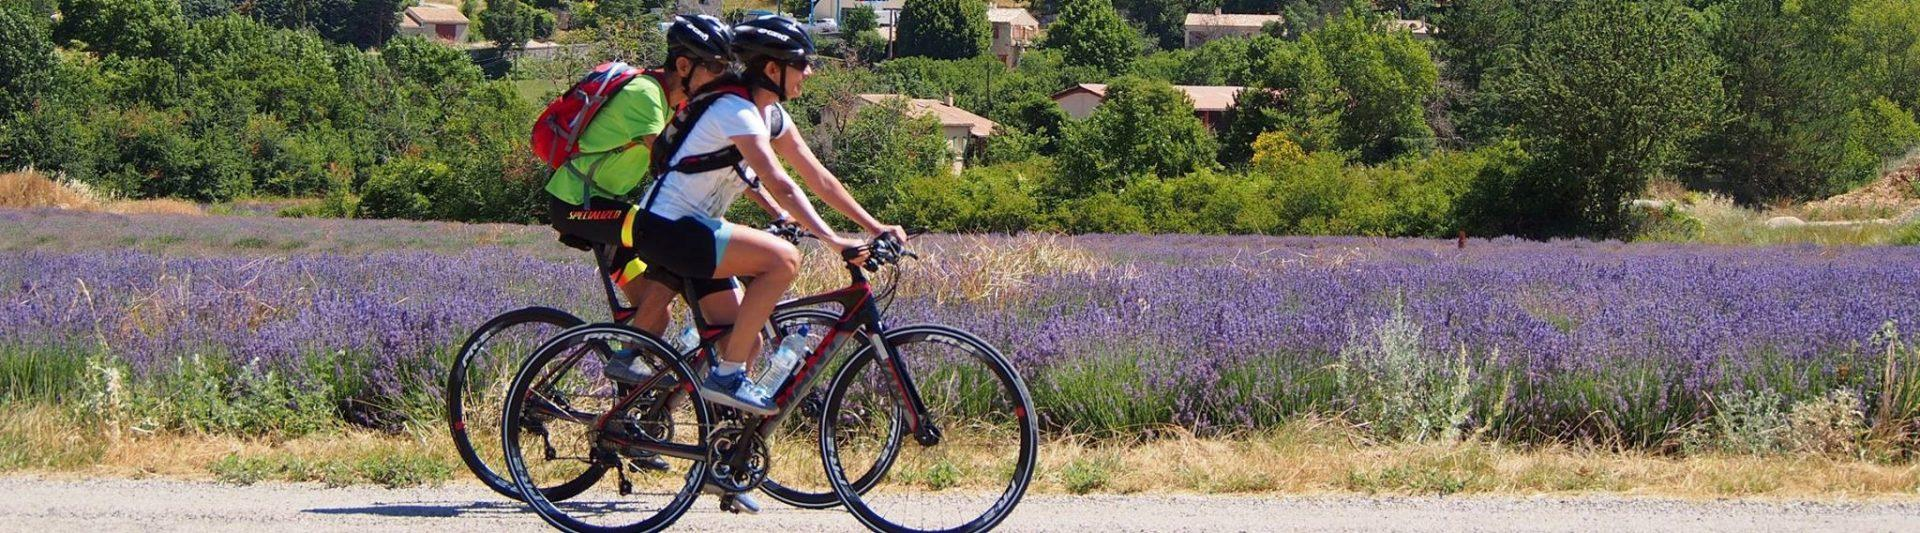 ride-and-more-travel-mont-ventoux-provence-luberon-animations